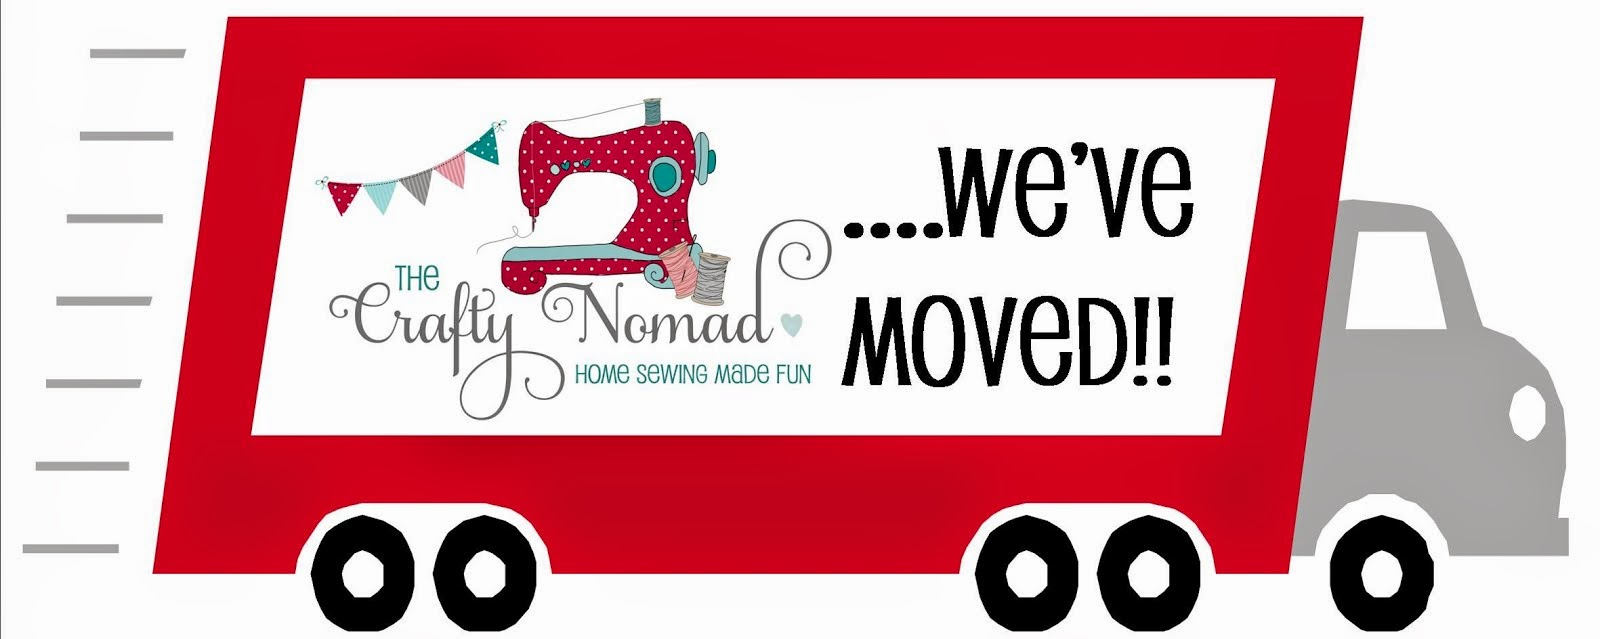 The Crafty Nomad Has Moved